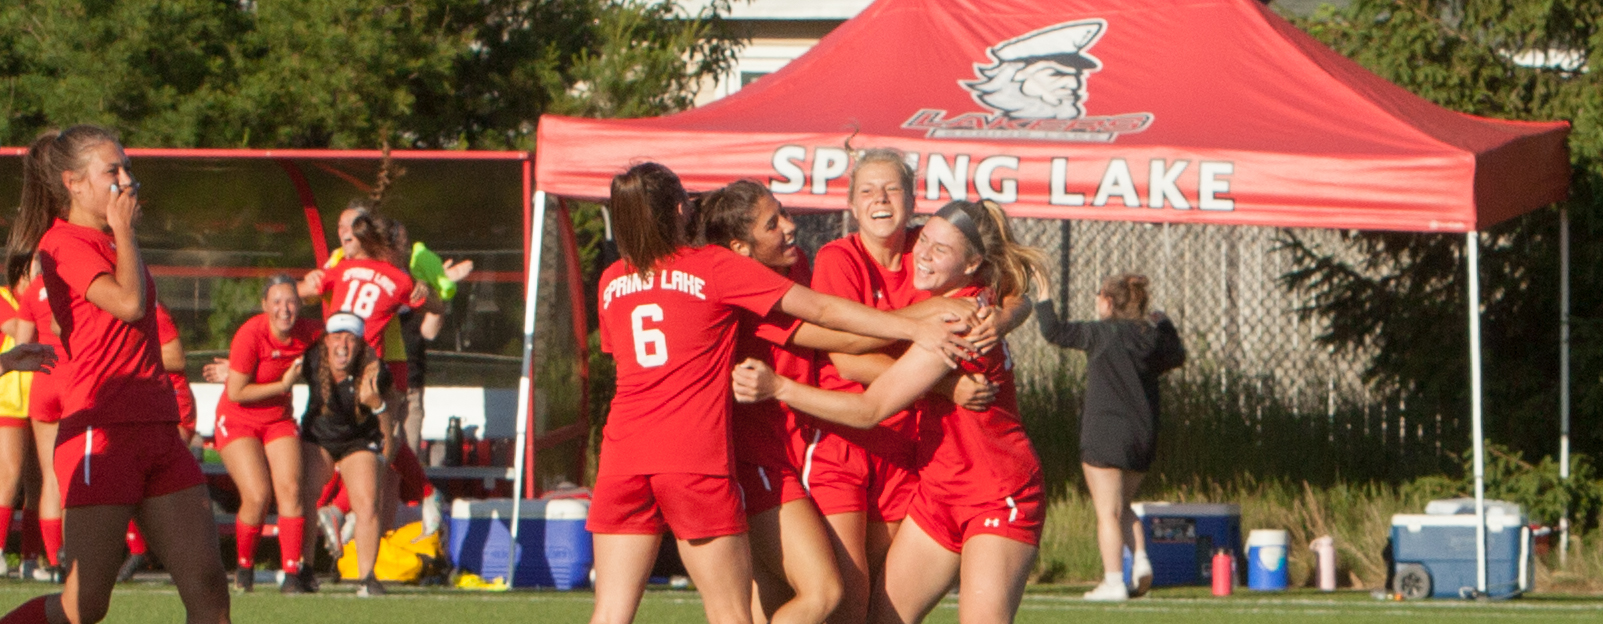 Spring Lake girls soccer team wins another heart-stopper, 2-1 over Byron Center, to earn a berth in Division 2 state finals